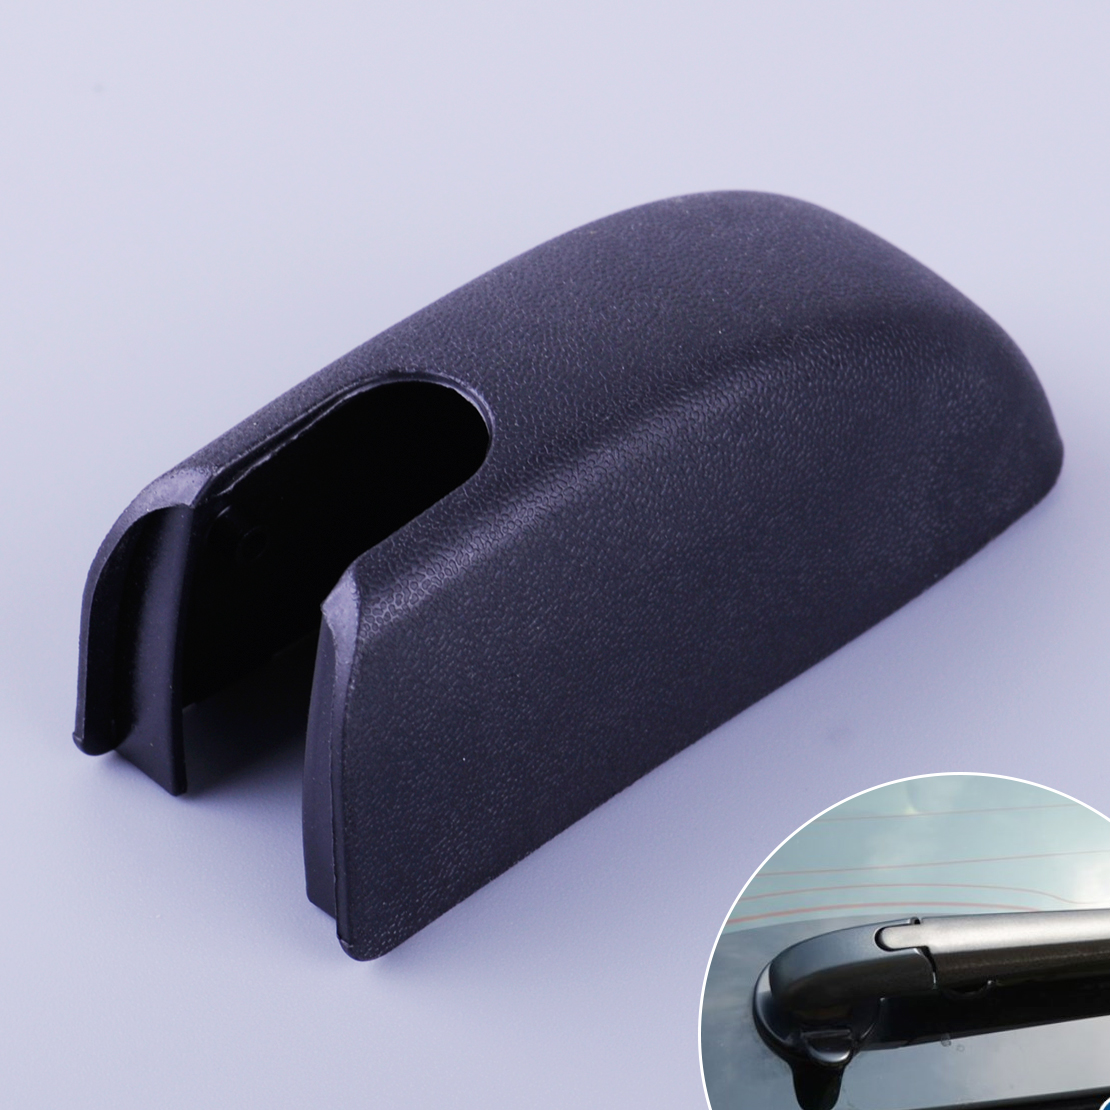 beler Car Auto Styling Accessories Repair Part 85292-35010 Rear Windshield Wiper Arm Nut Cover Cap Plastic-in Windscreen Wipers